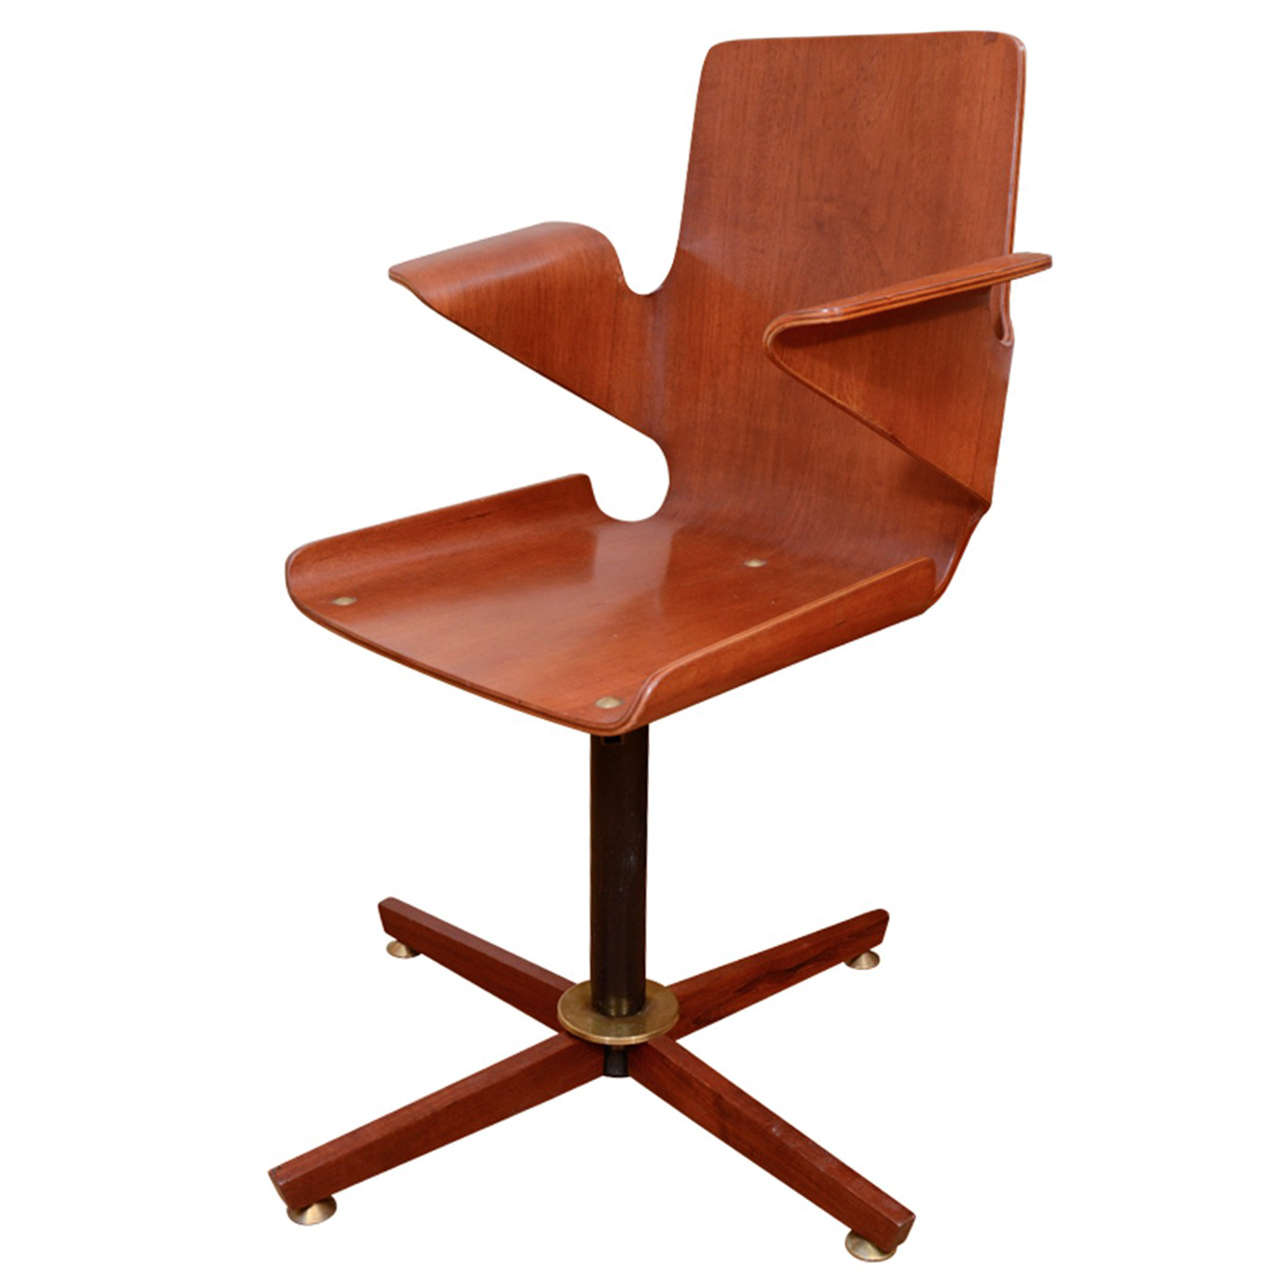 Single bentwood and metal desk chair at 1stdibs